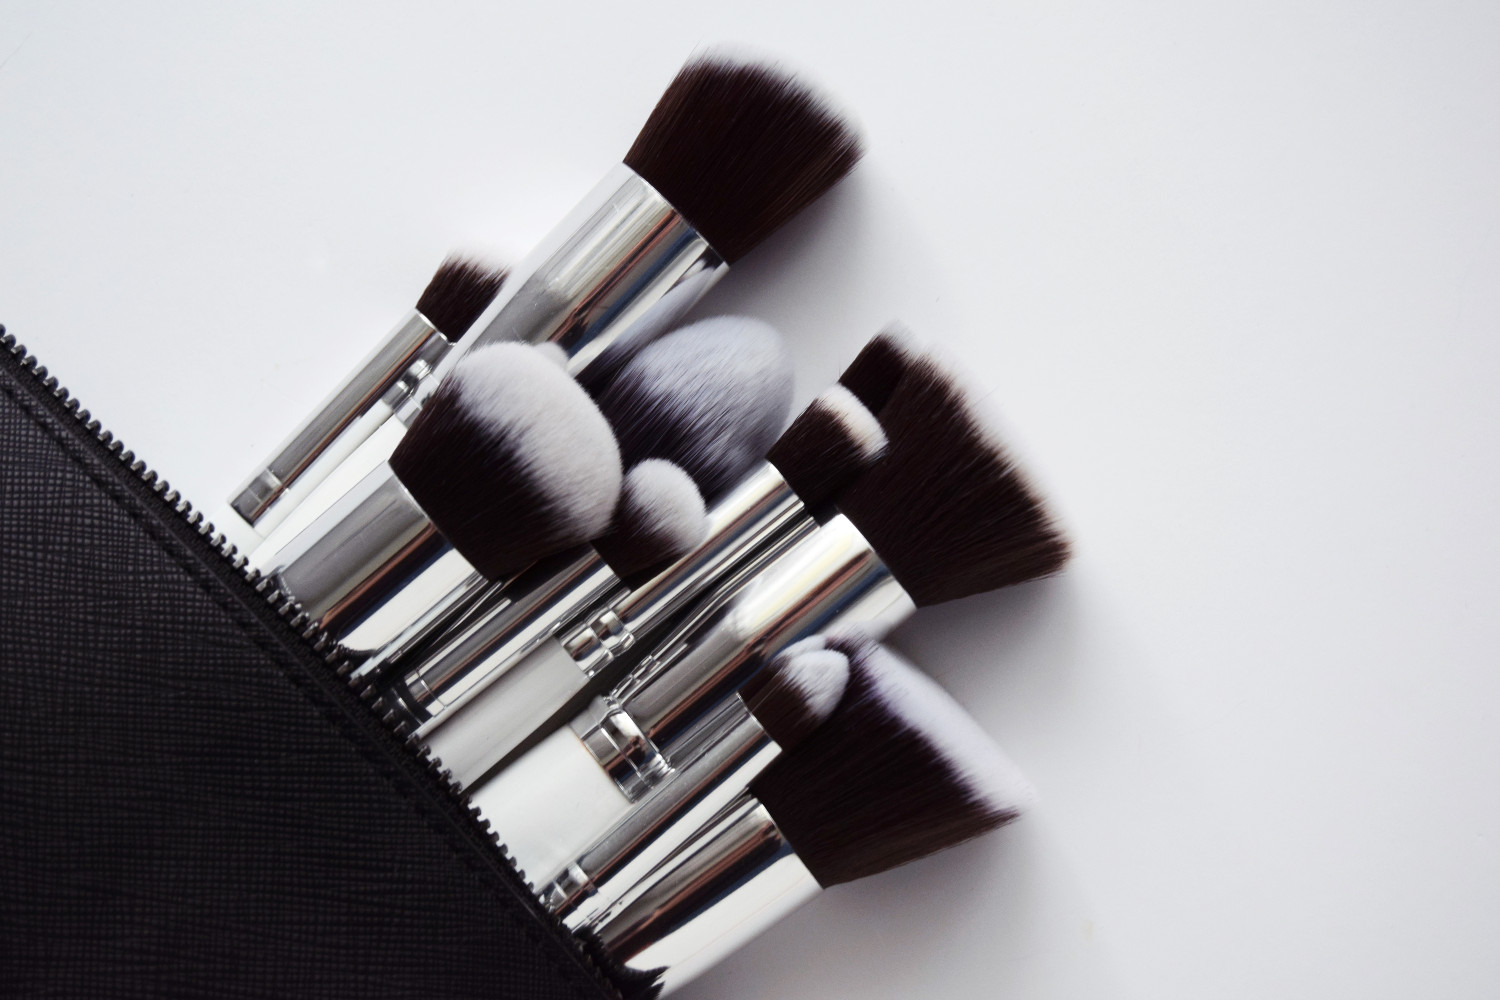 zalabell_beauty_jessup_brushes_review_testing_makeup_autumn_1